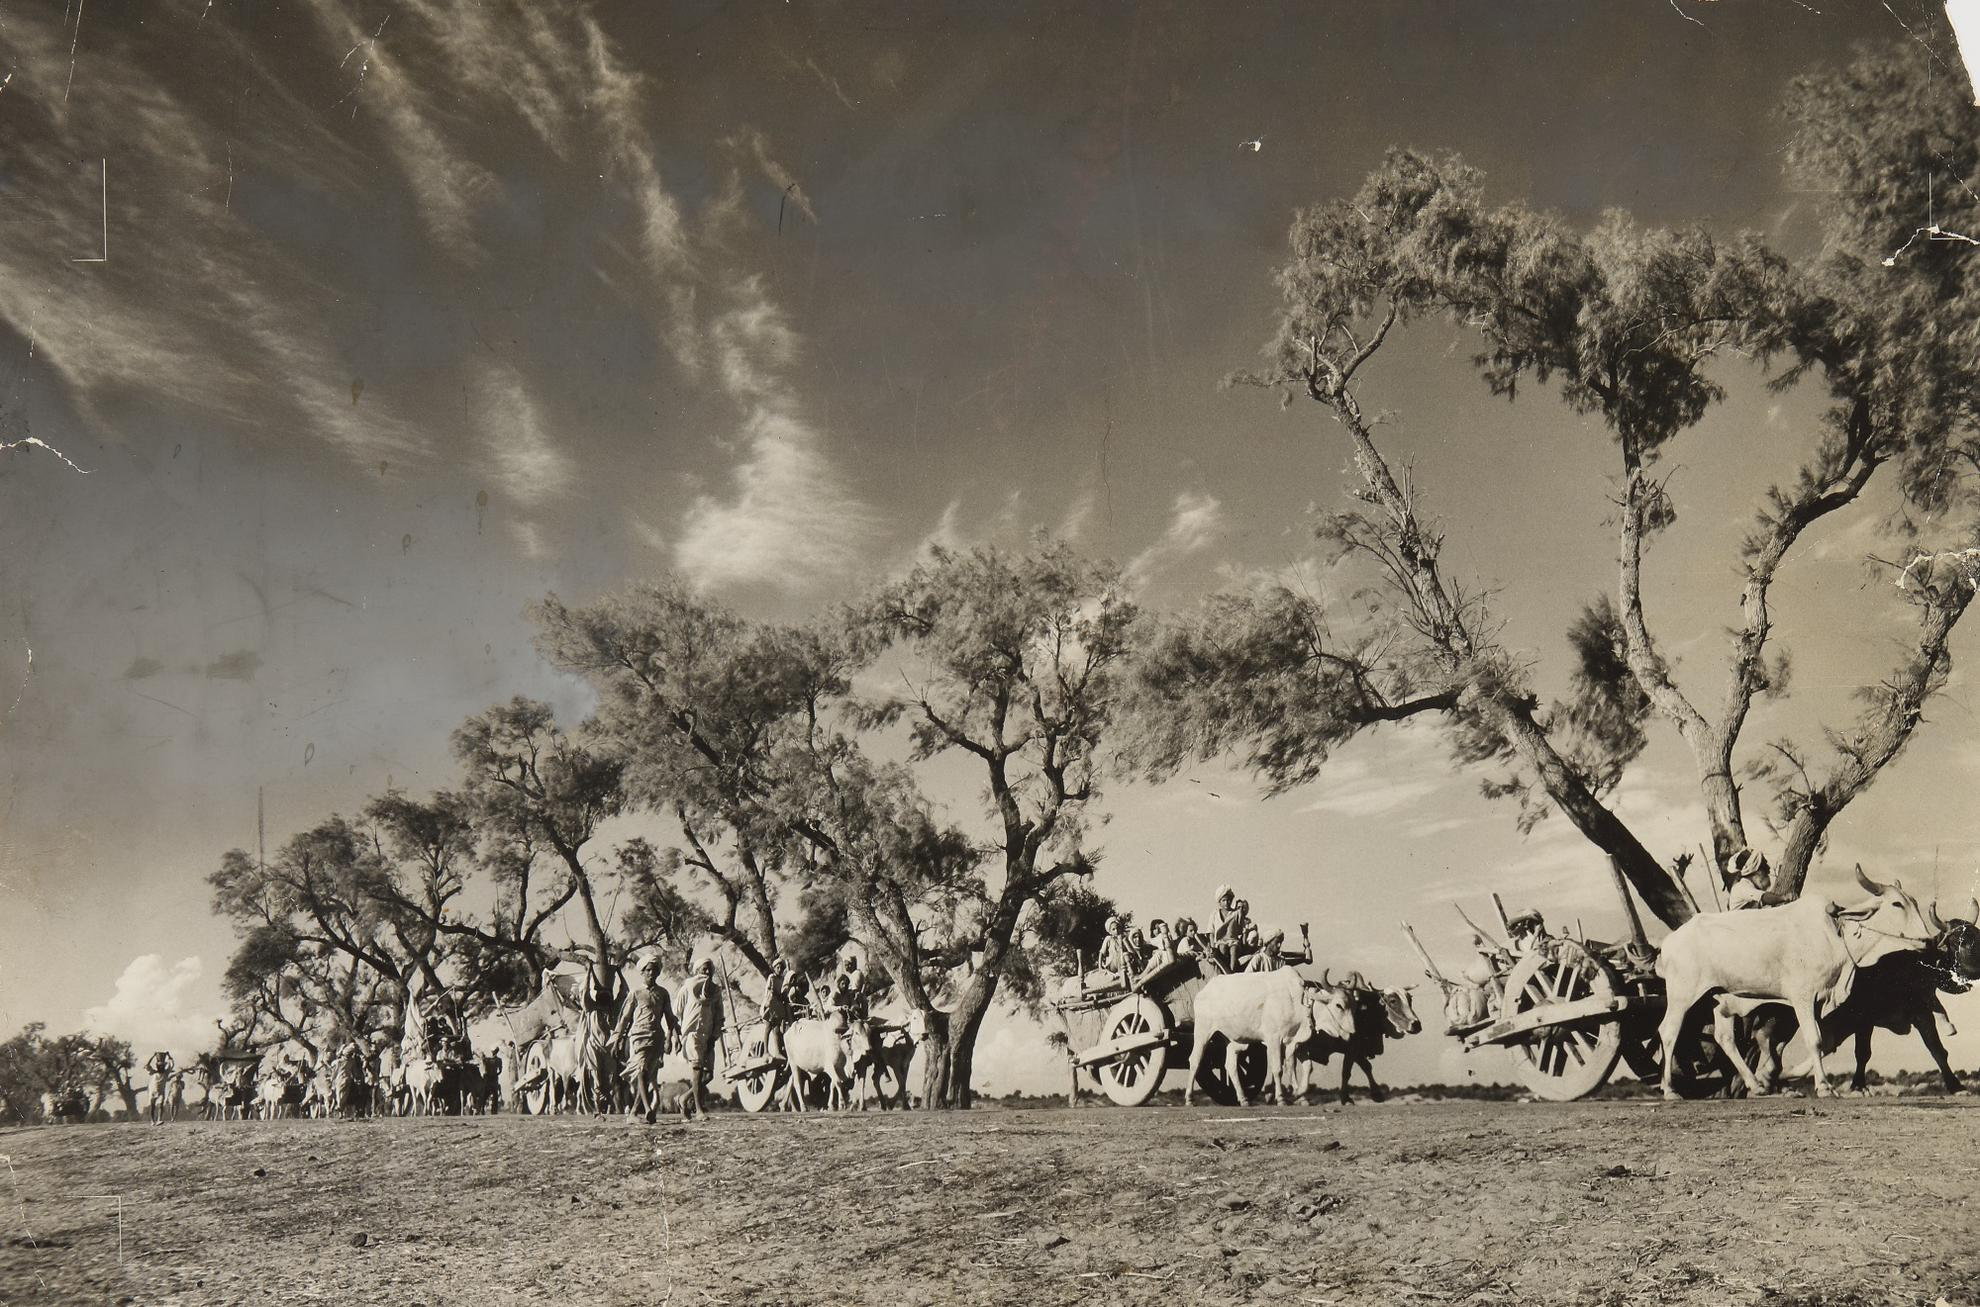 Margaret Bourke-White-Great Migration: Emigrant Trains Of Sikhs-1947